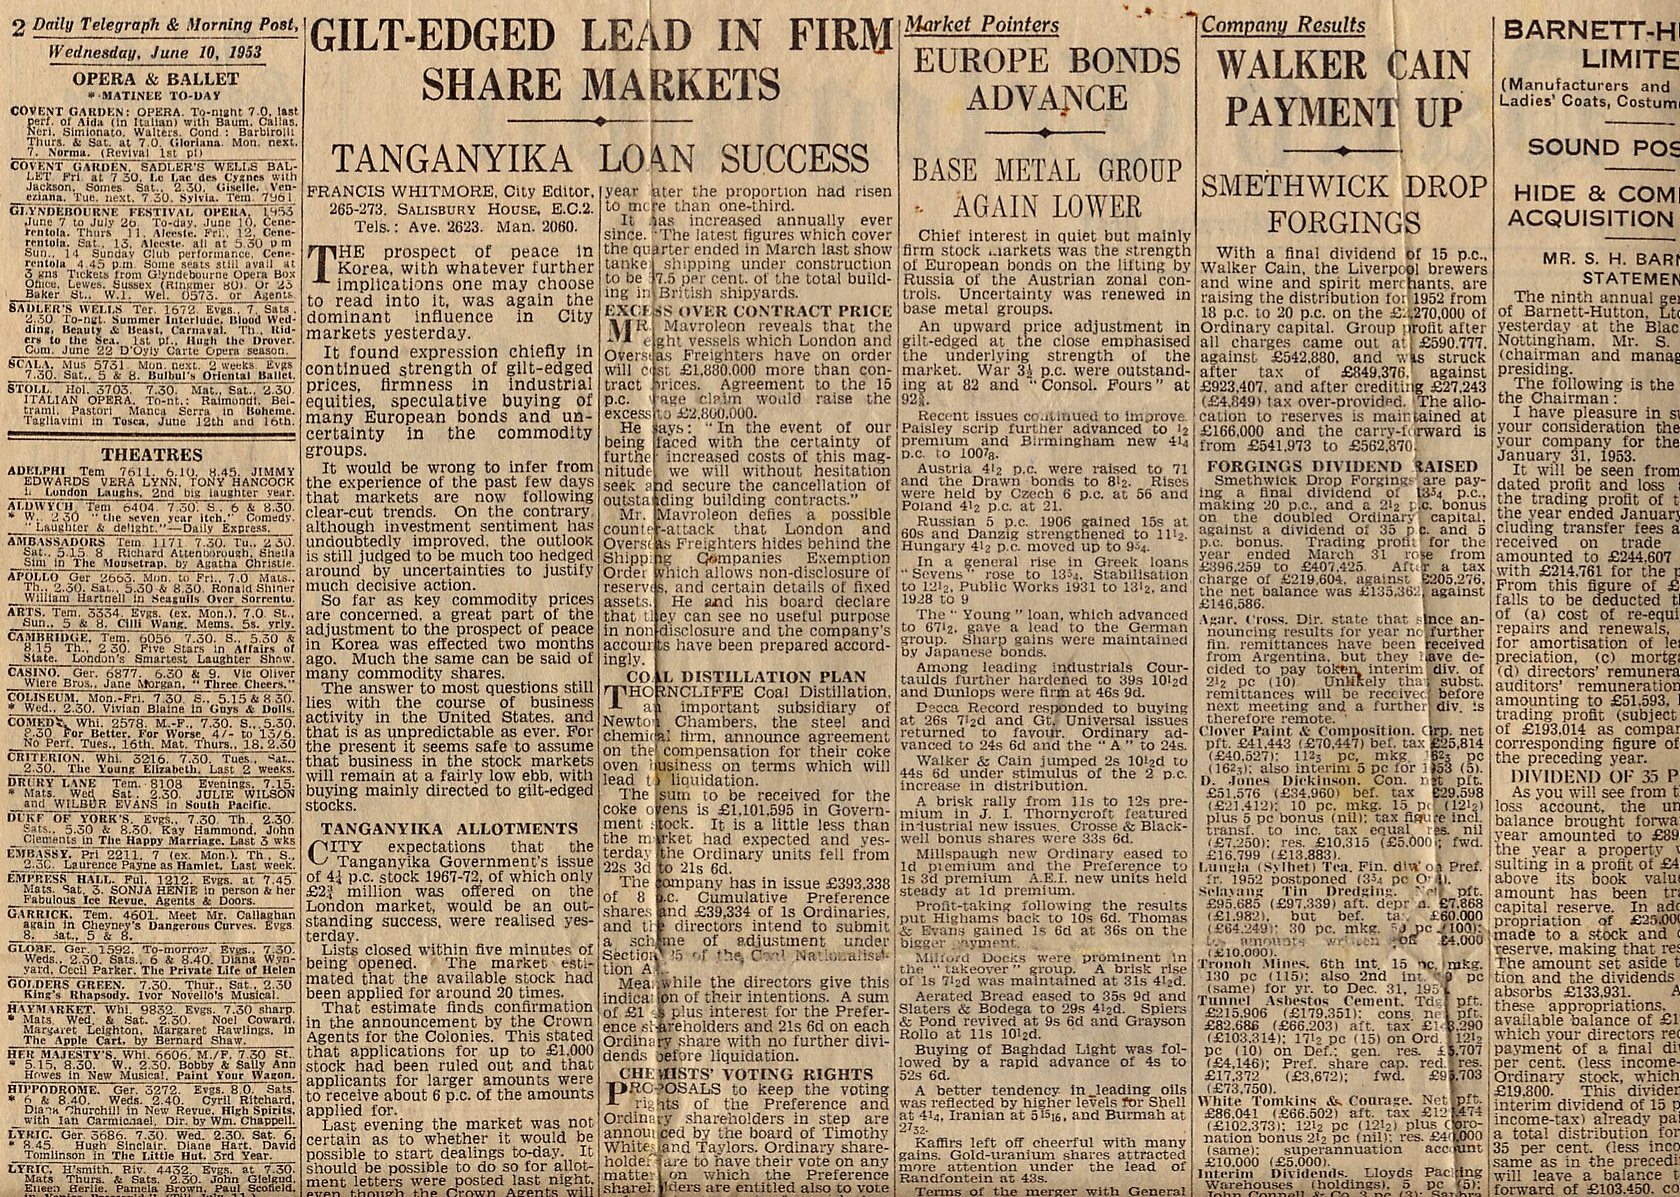 49_The Daily Telegraph-June-10-1953-Partial Pg 2